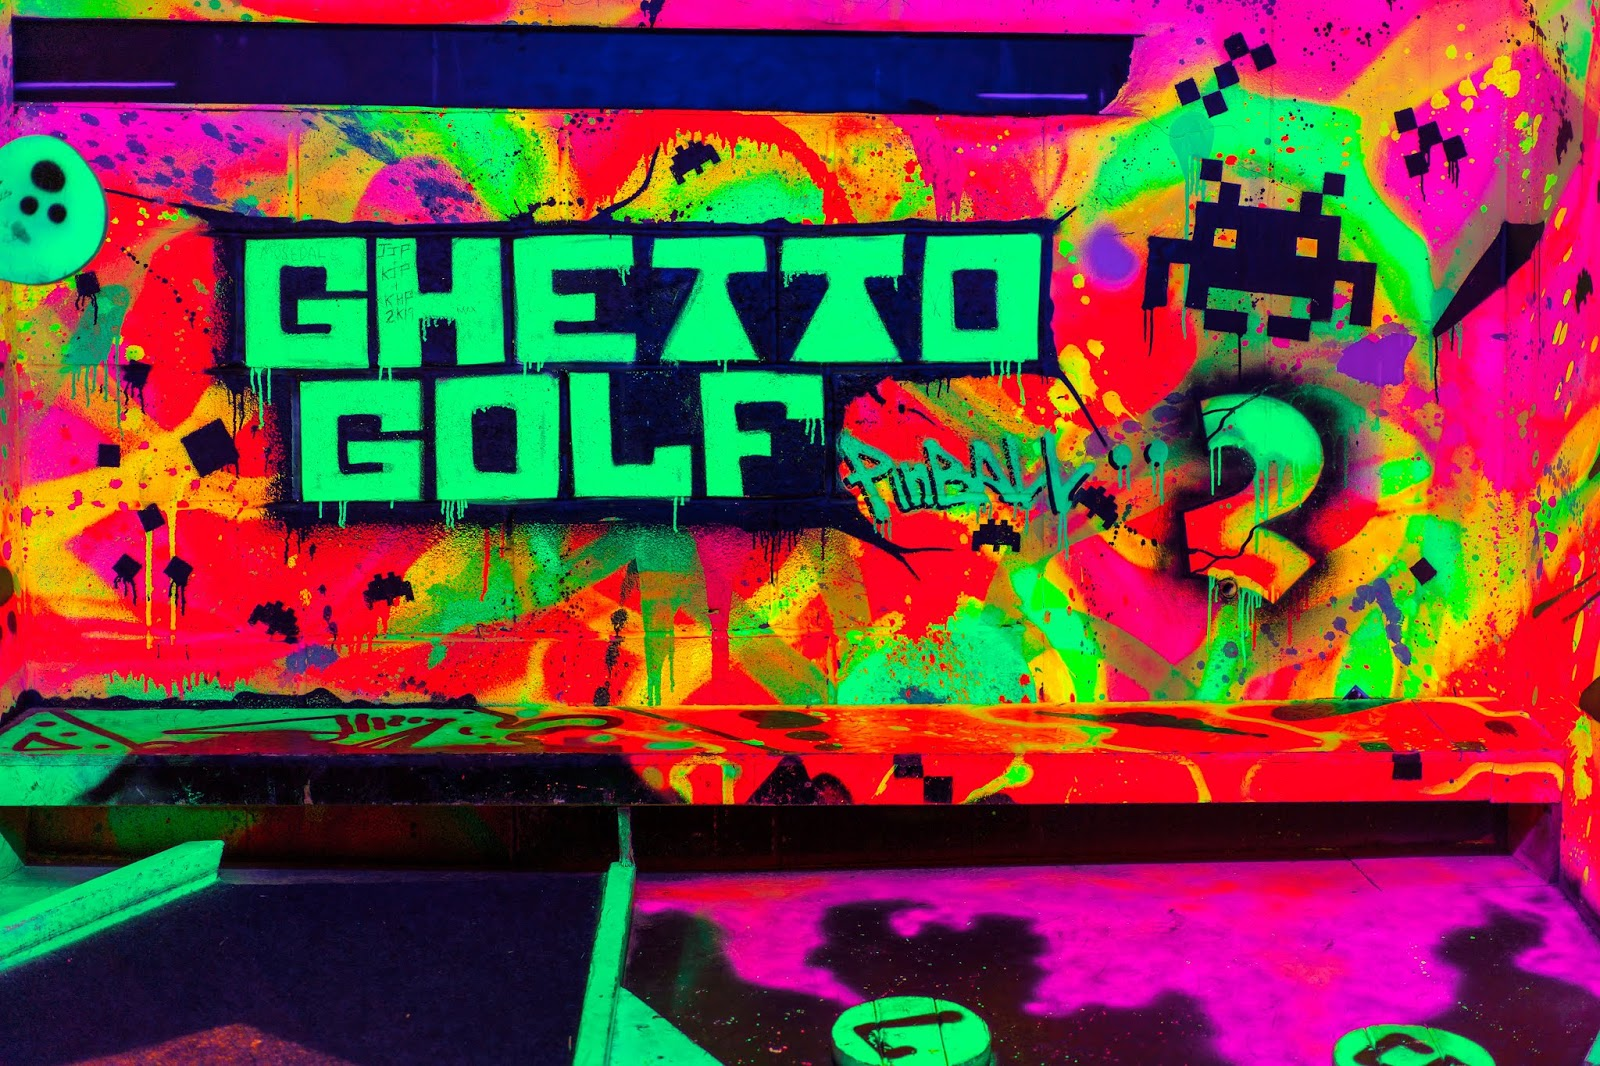 What to do in Birmingham Ghetto Golf Review by Birmingham lifestyle and travel blogger Iga Berry